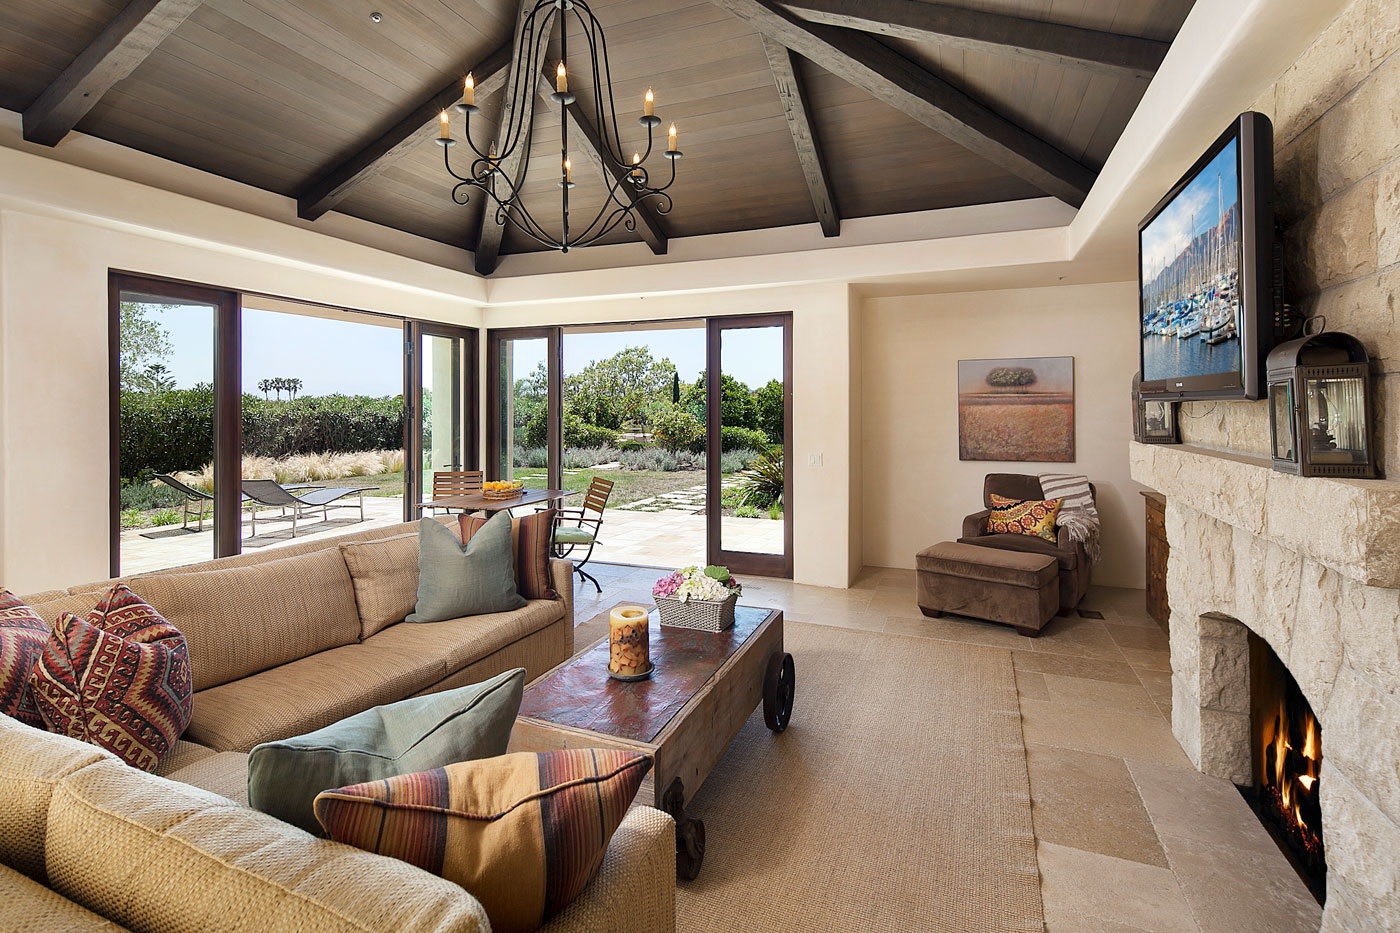 Property for Sale: 667 Juan Crespi Lane, Montecito, CA 93108 5 Beds 6.5 Baths 5,021 Sq Ft Casual Luxury!